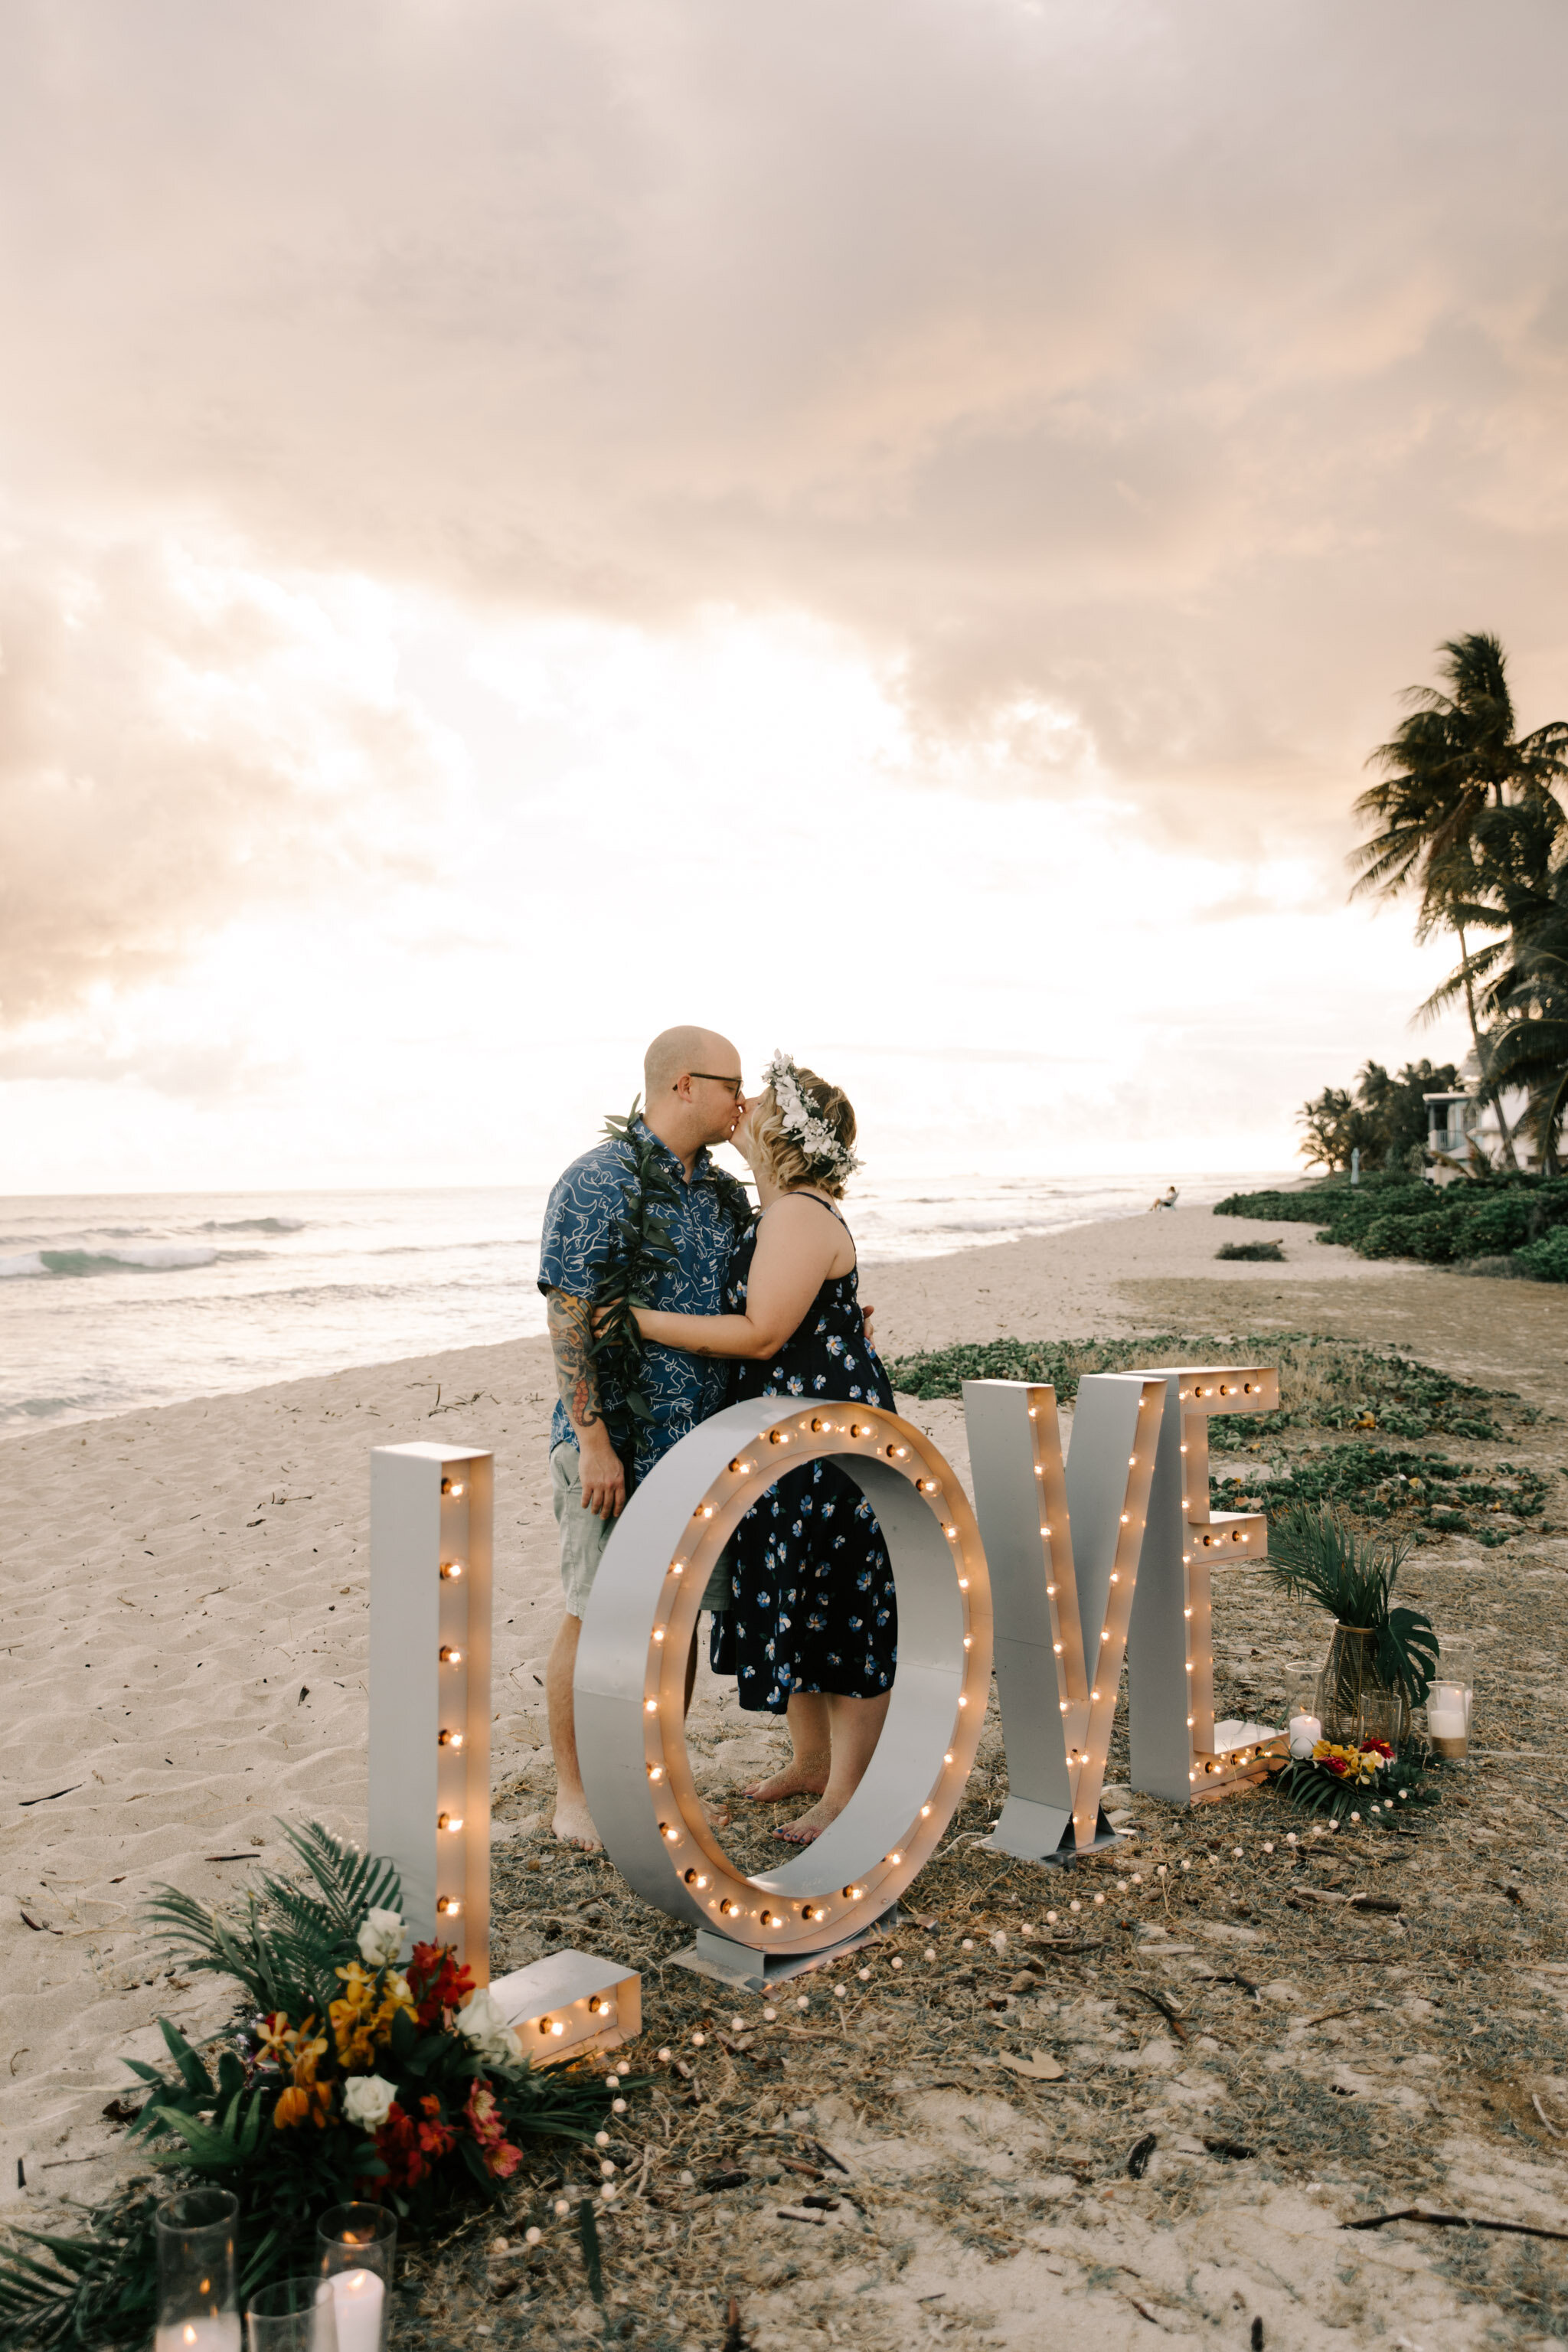 Love light wedding sign - Aloha Picnics Puuloa Beach Park Hawaii Vow Renewal By Oahu Wedding Photographer Desiree Leilani